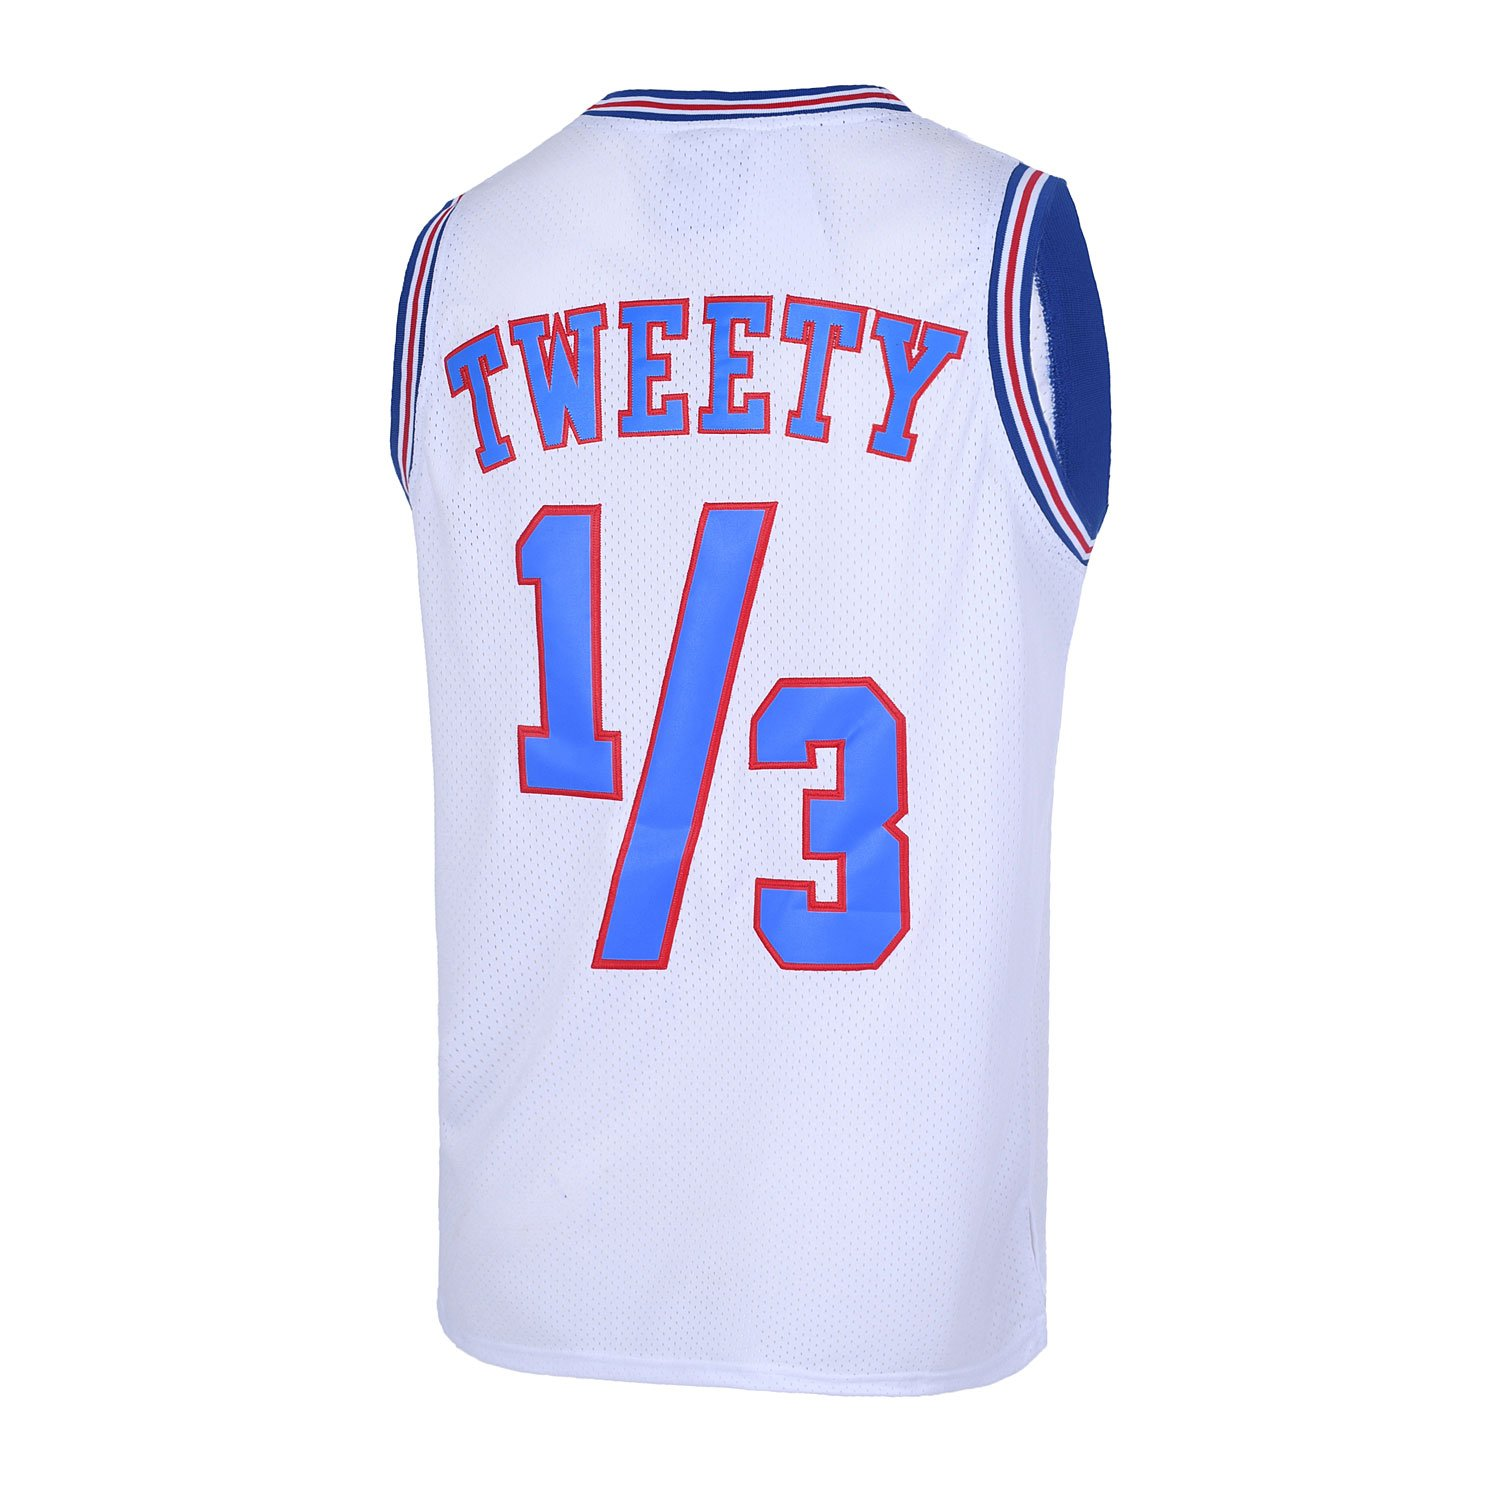 d3cefc90c52 Amazon.com  Mens Basketball Jersey 1 3 Tweety Space Jam Jersey White 90S  Shirts  Clothing